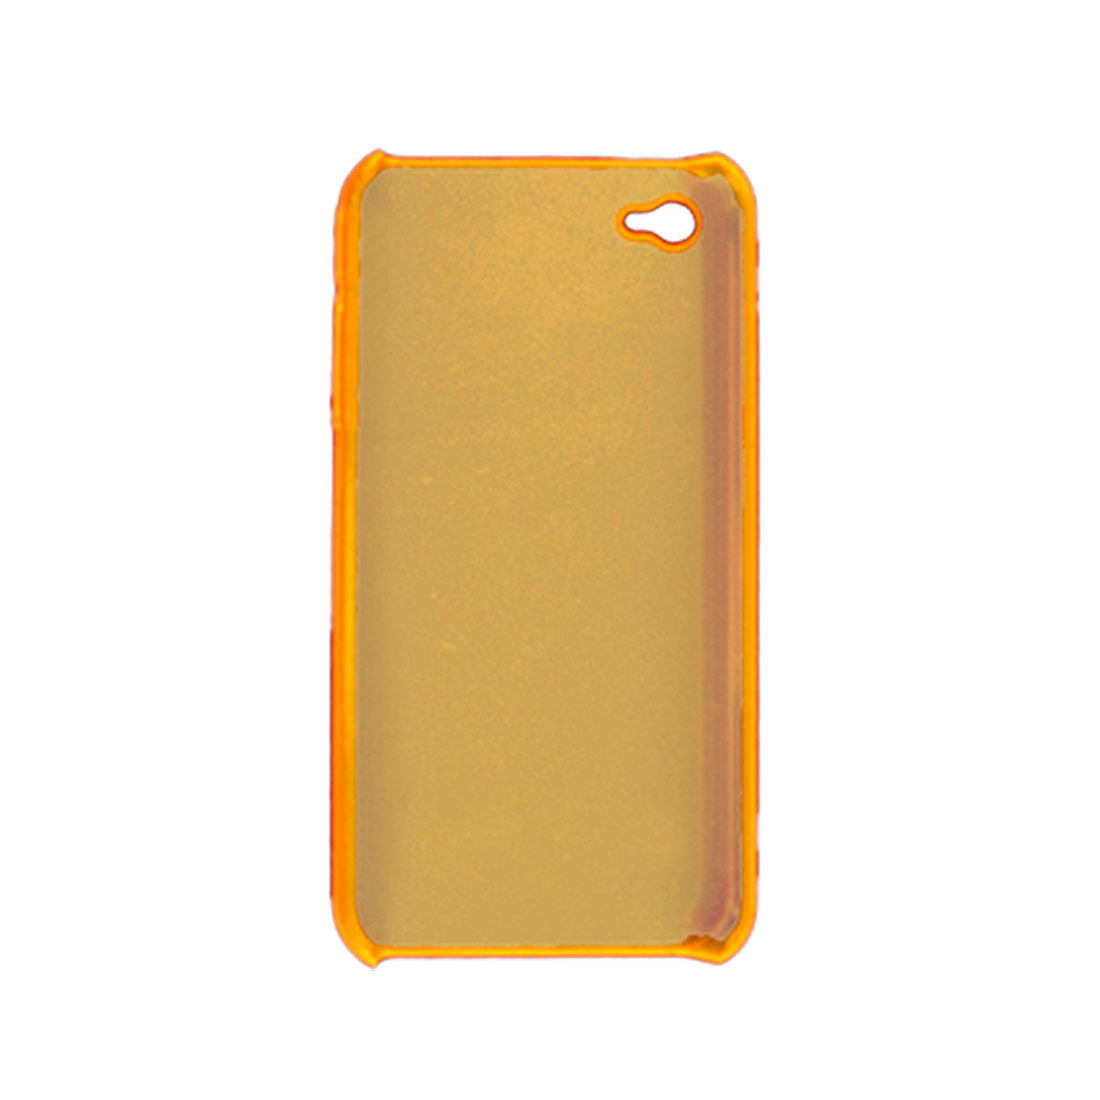 Clear Orange Hard Plastic Case w Stylus Pen for iPhone 4G 4